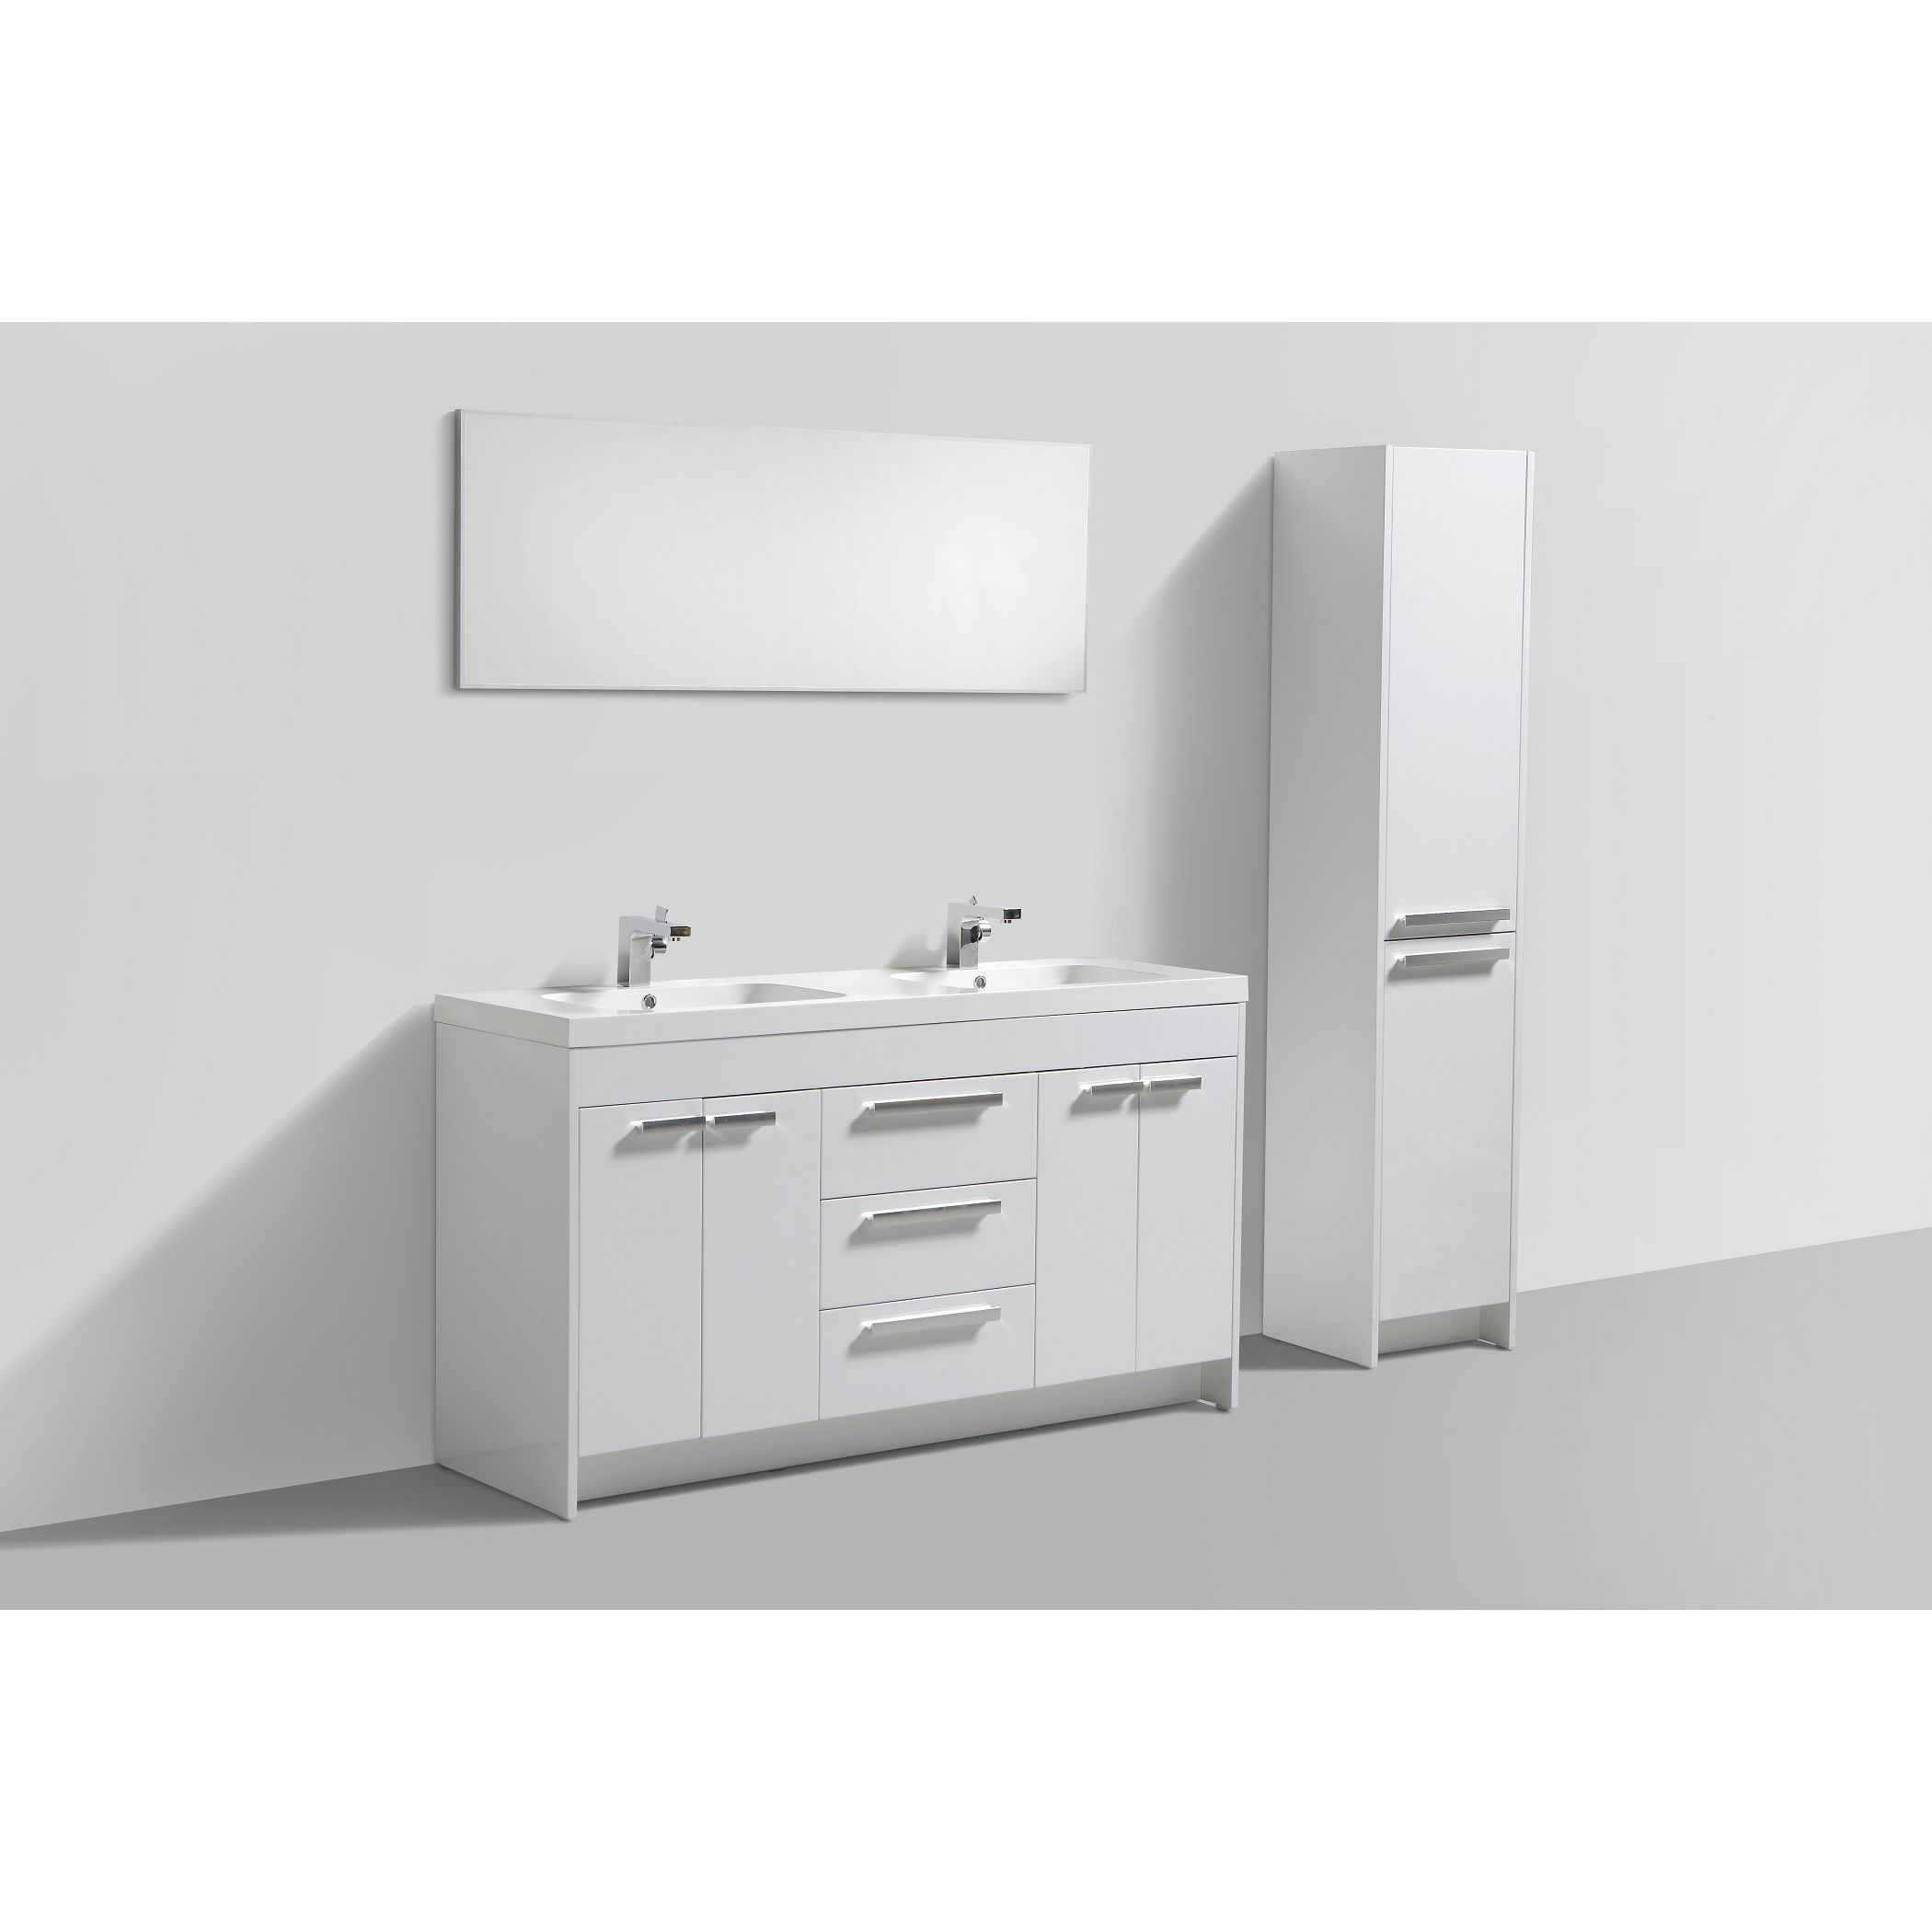 and inches together inch vanity sink bathroom learette cheery ceramic soothing double awesome s dw vanities small vanit with chair